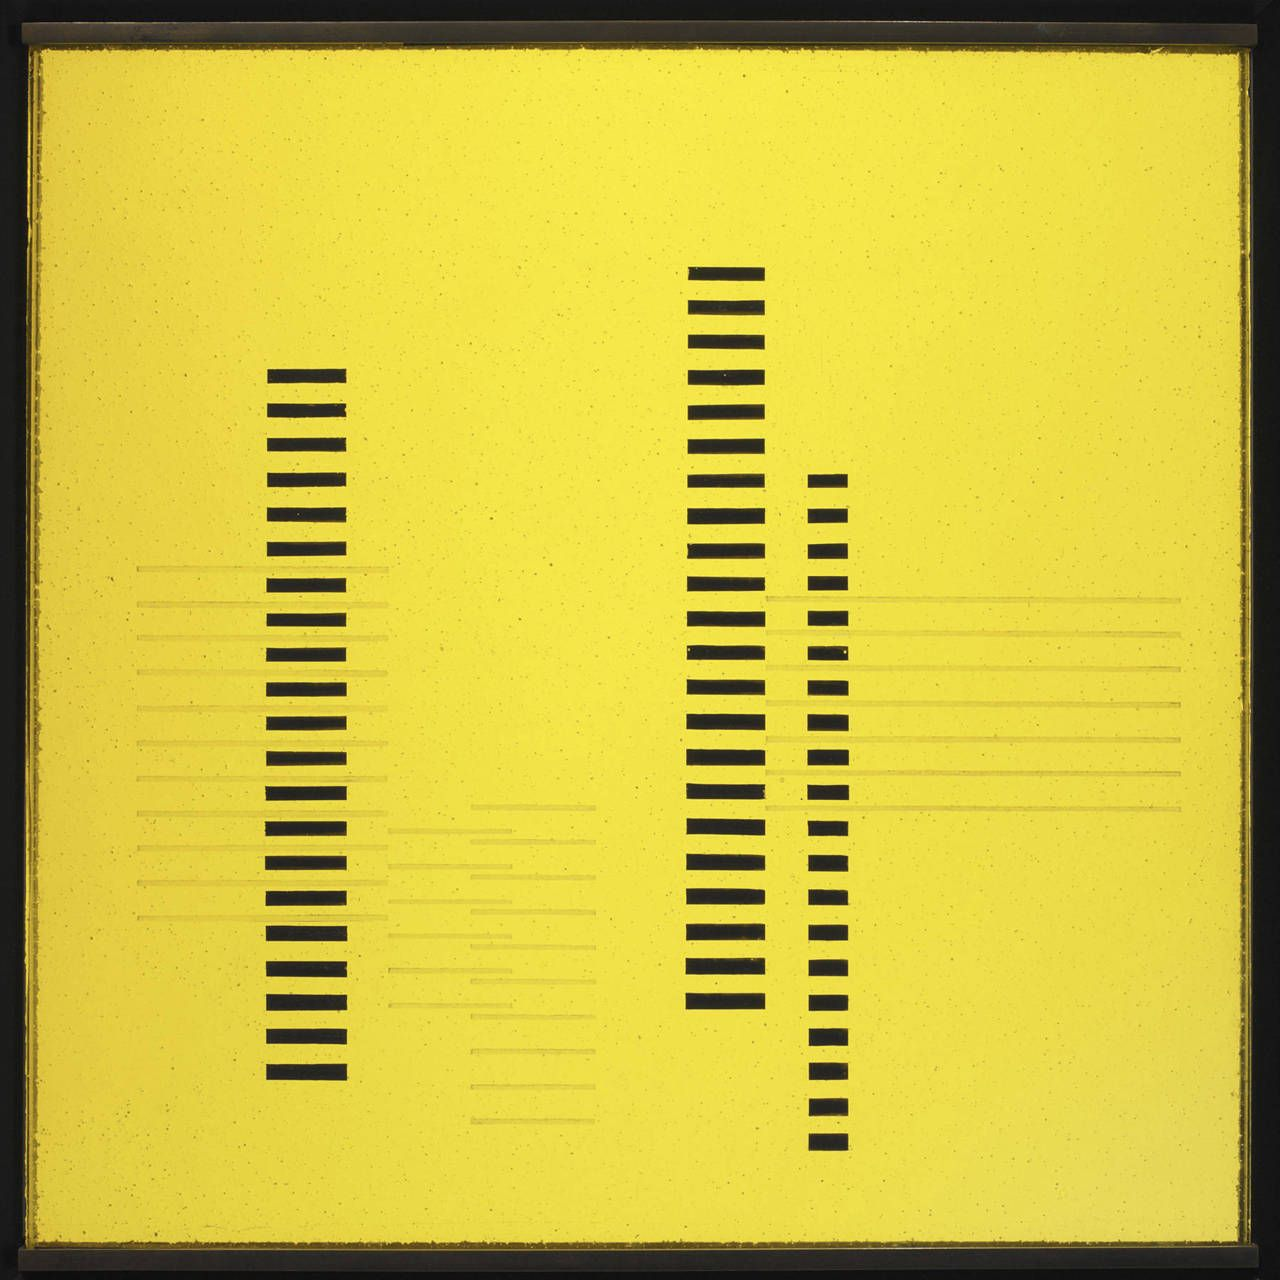 Josef Albers (American, b. Germany, 1888-1976). Skyscrapers on Transparent Yellow, ca. 1929.